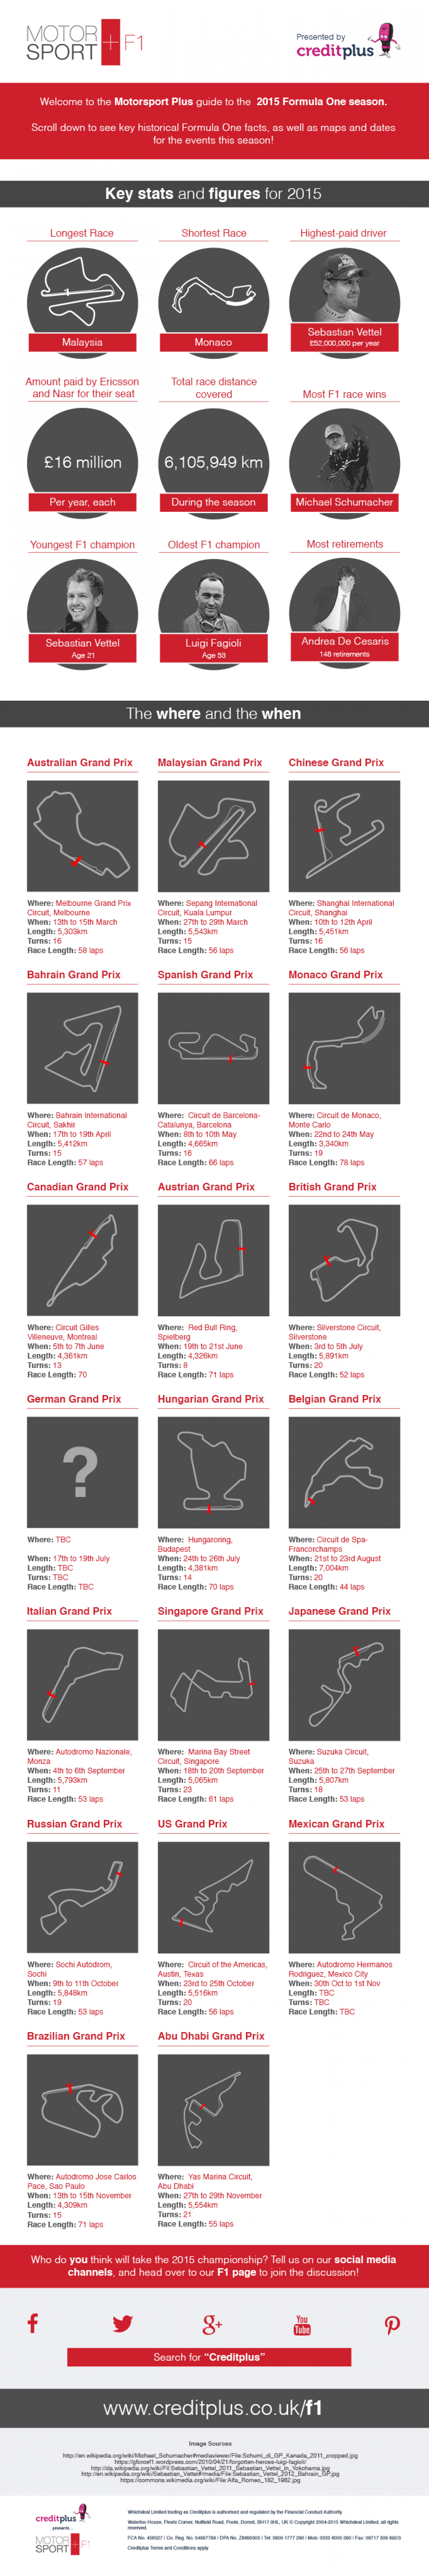 F1 2015 Track by Track Infographic